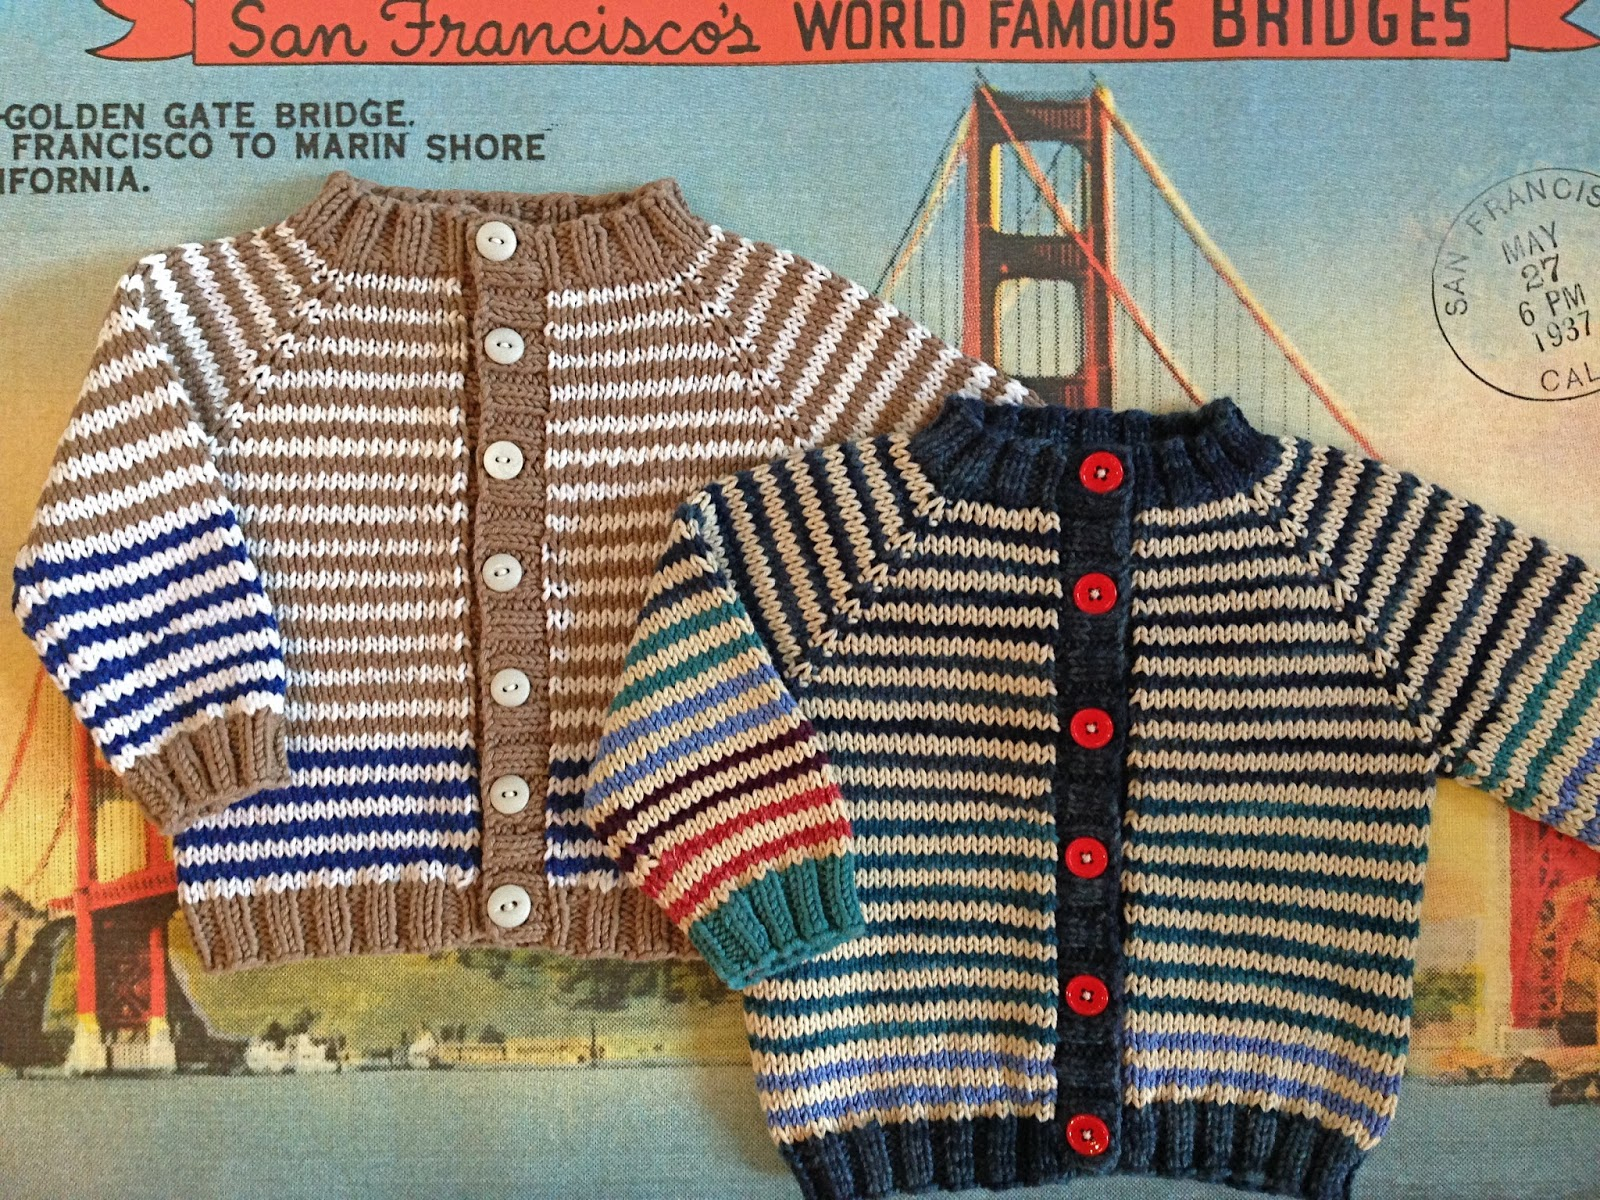 Knitting Patterns For Childrens Sweaters Free Crochet Childrens Sweater Free Knitting Patterns For Ba Sweaters